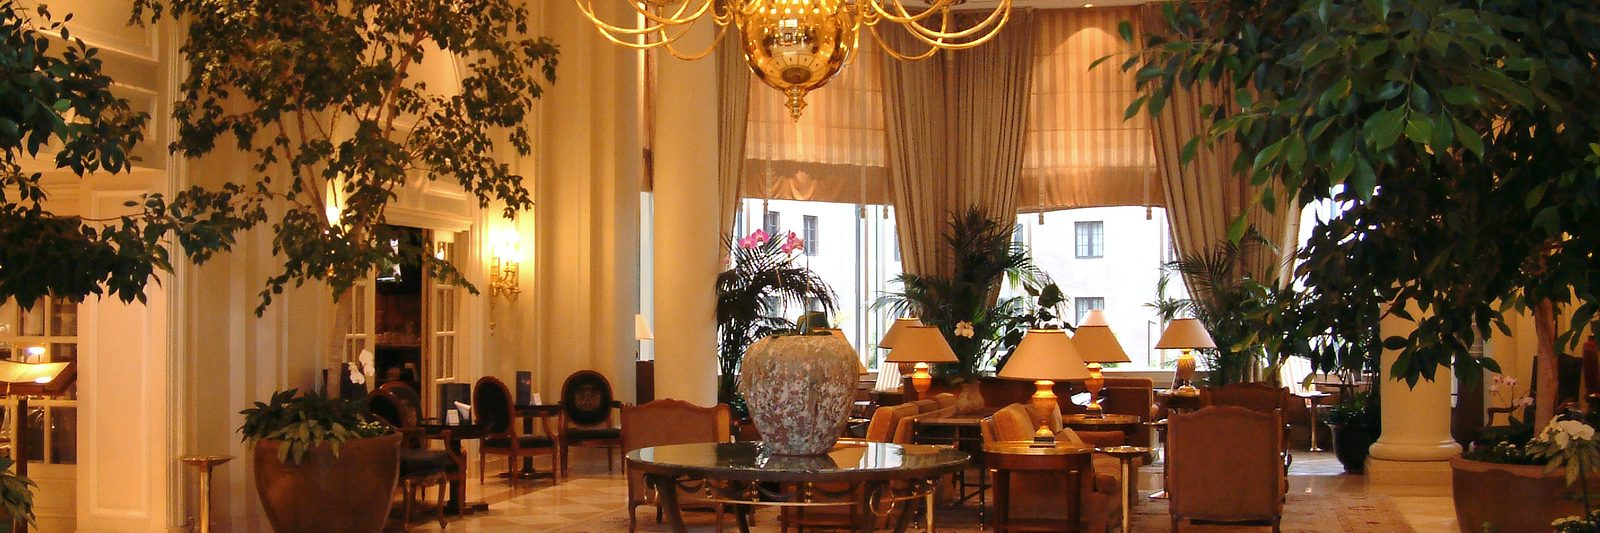 Hospitality depicted as a hotel lobby